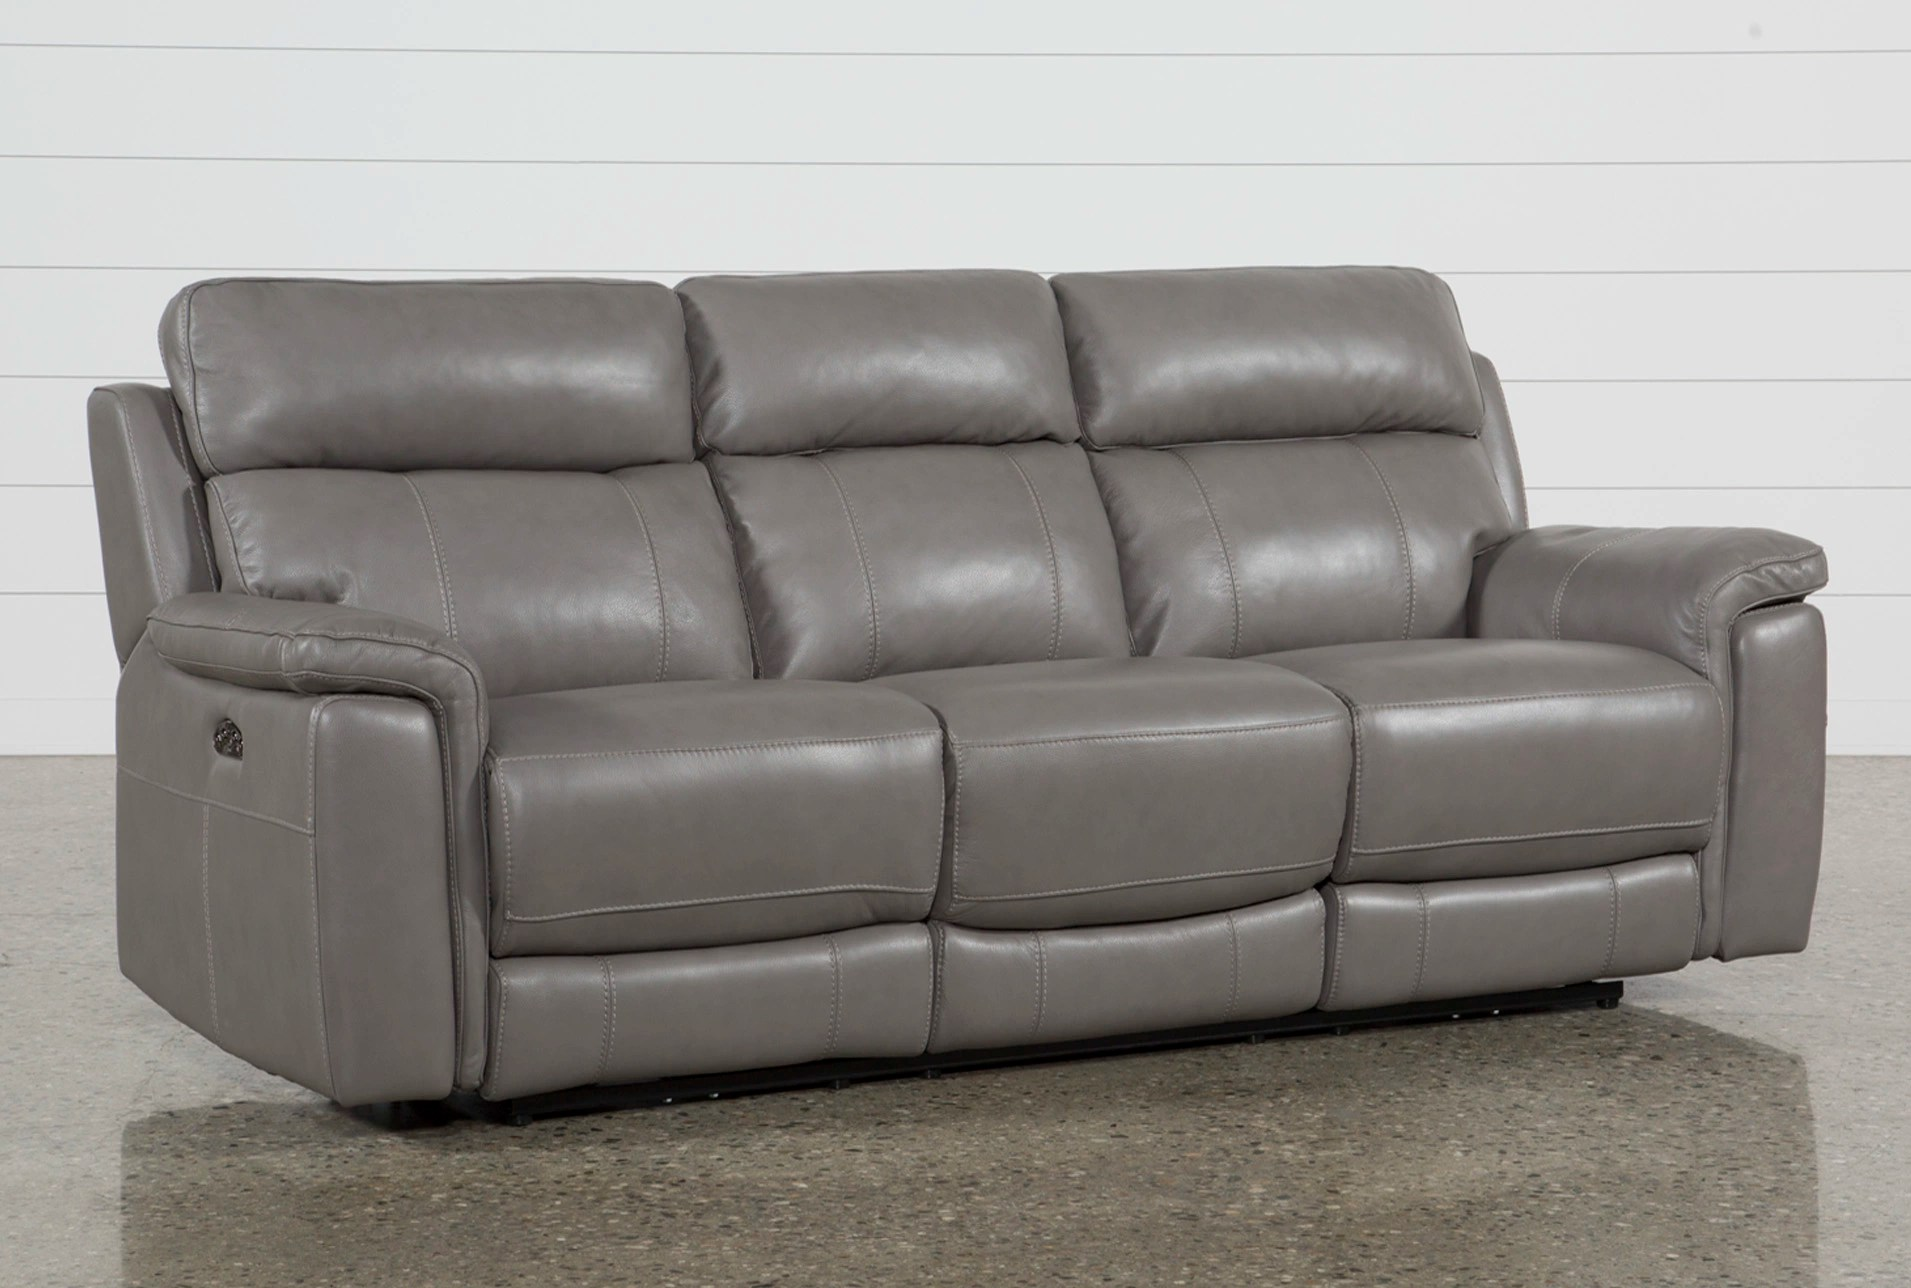 Natuzzi Sofa Harveys Recliner Sofa Leather Whiskyclub Store Whiskyclub Store